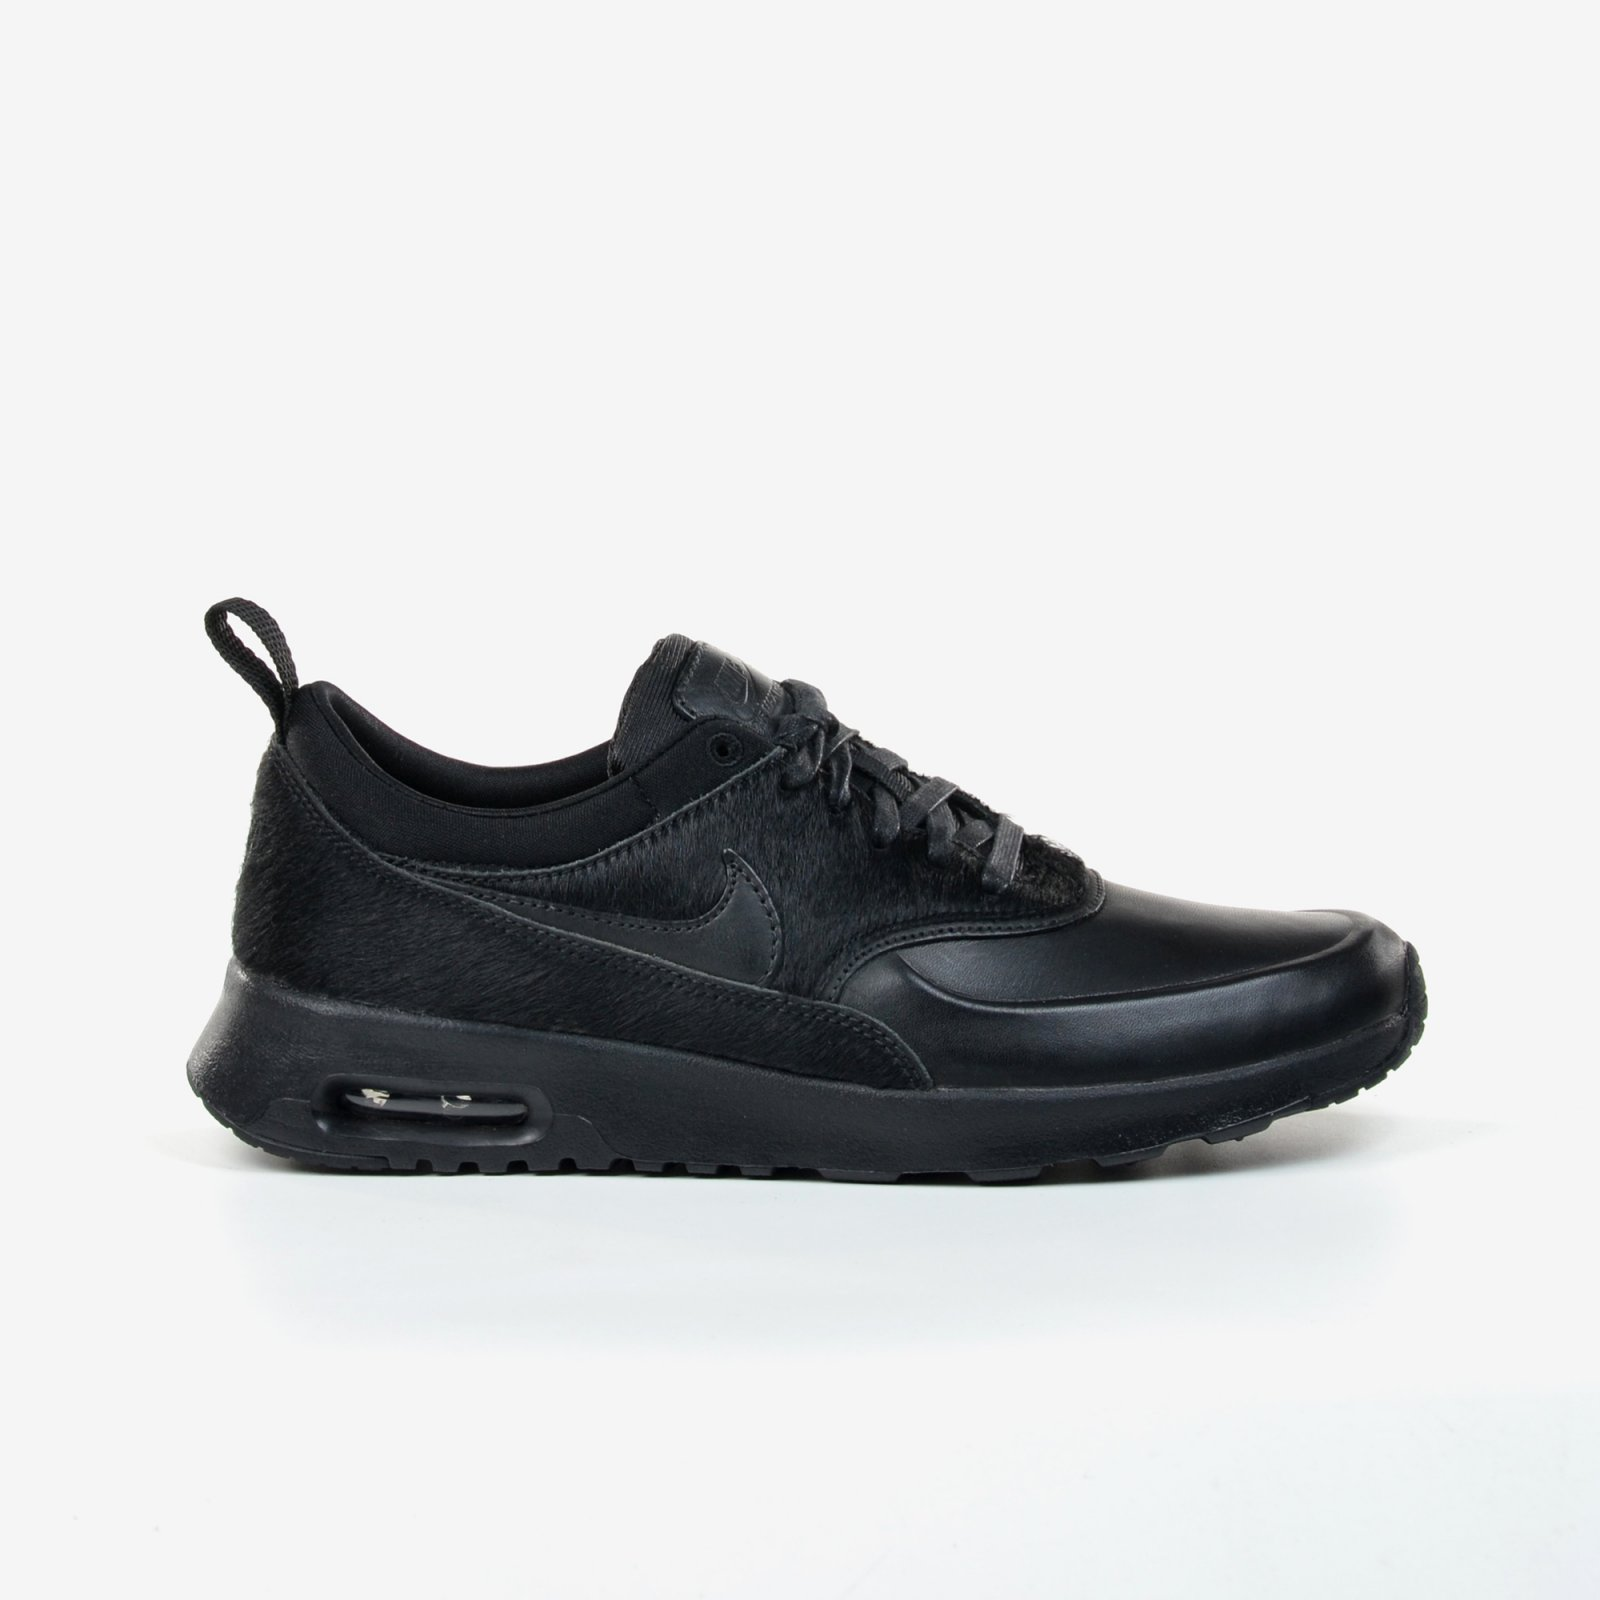 Womens Nike Air Max Thea Ultra Premium Black Trainers 848279